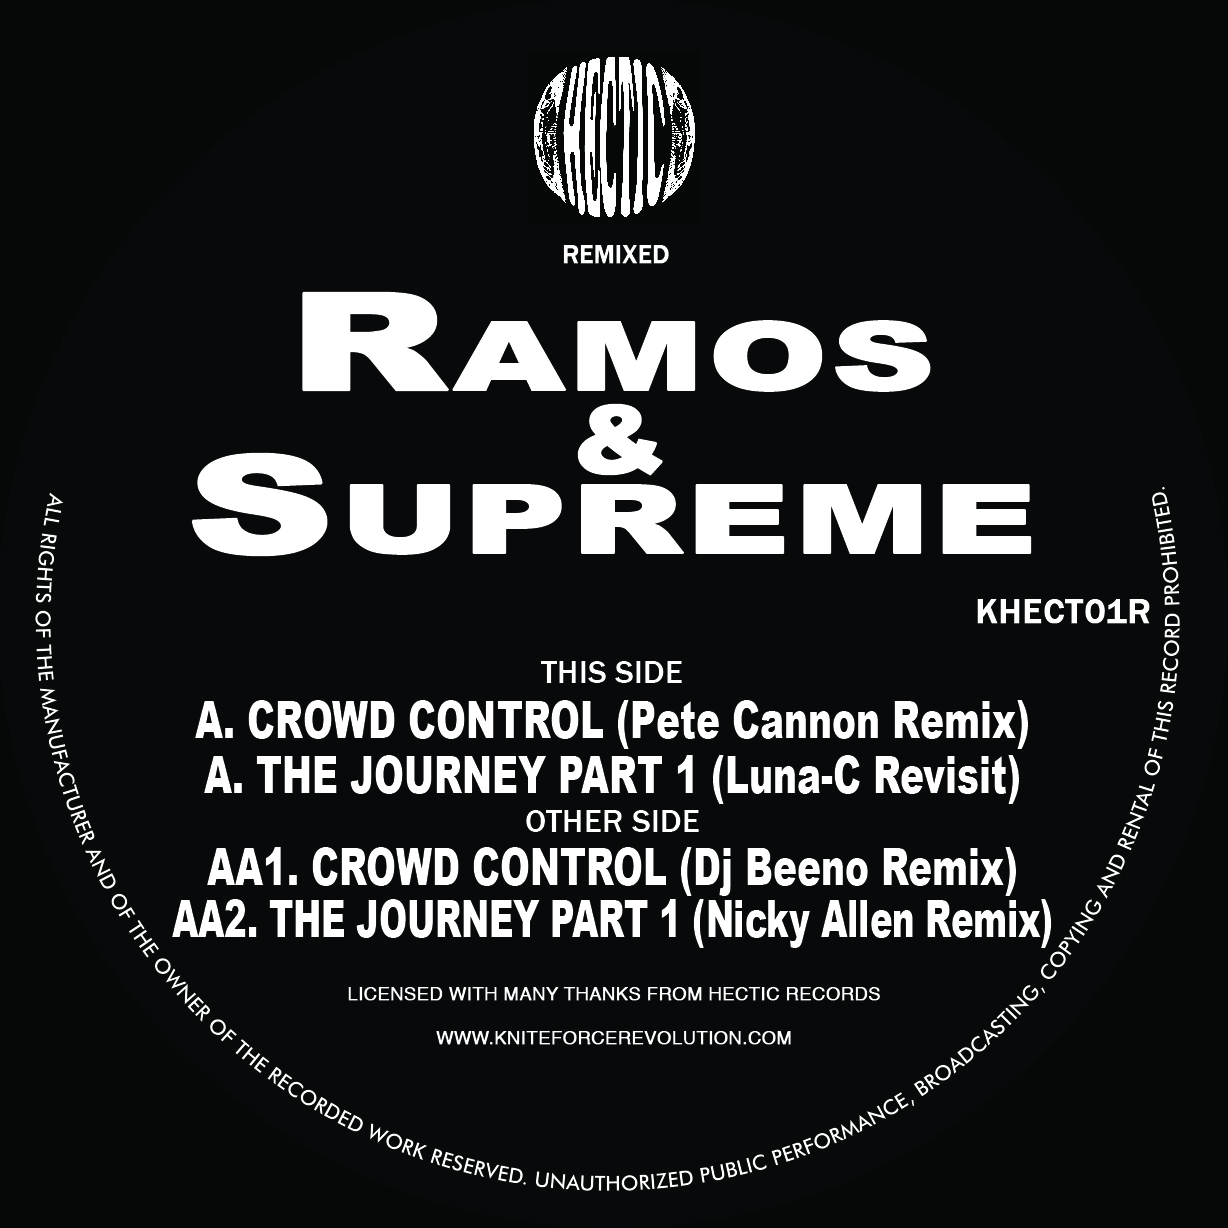 "[KHECT01R] Ramos & Supreme - The Journey / Crowd Control Remixes EP (12"" Vinyl + Digital)"